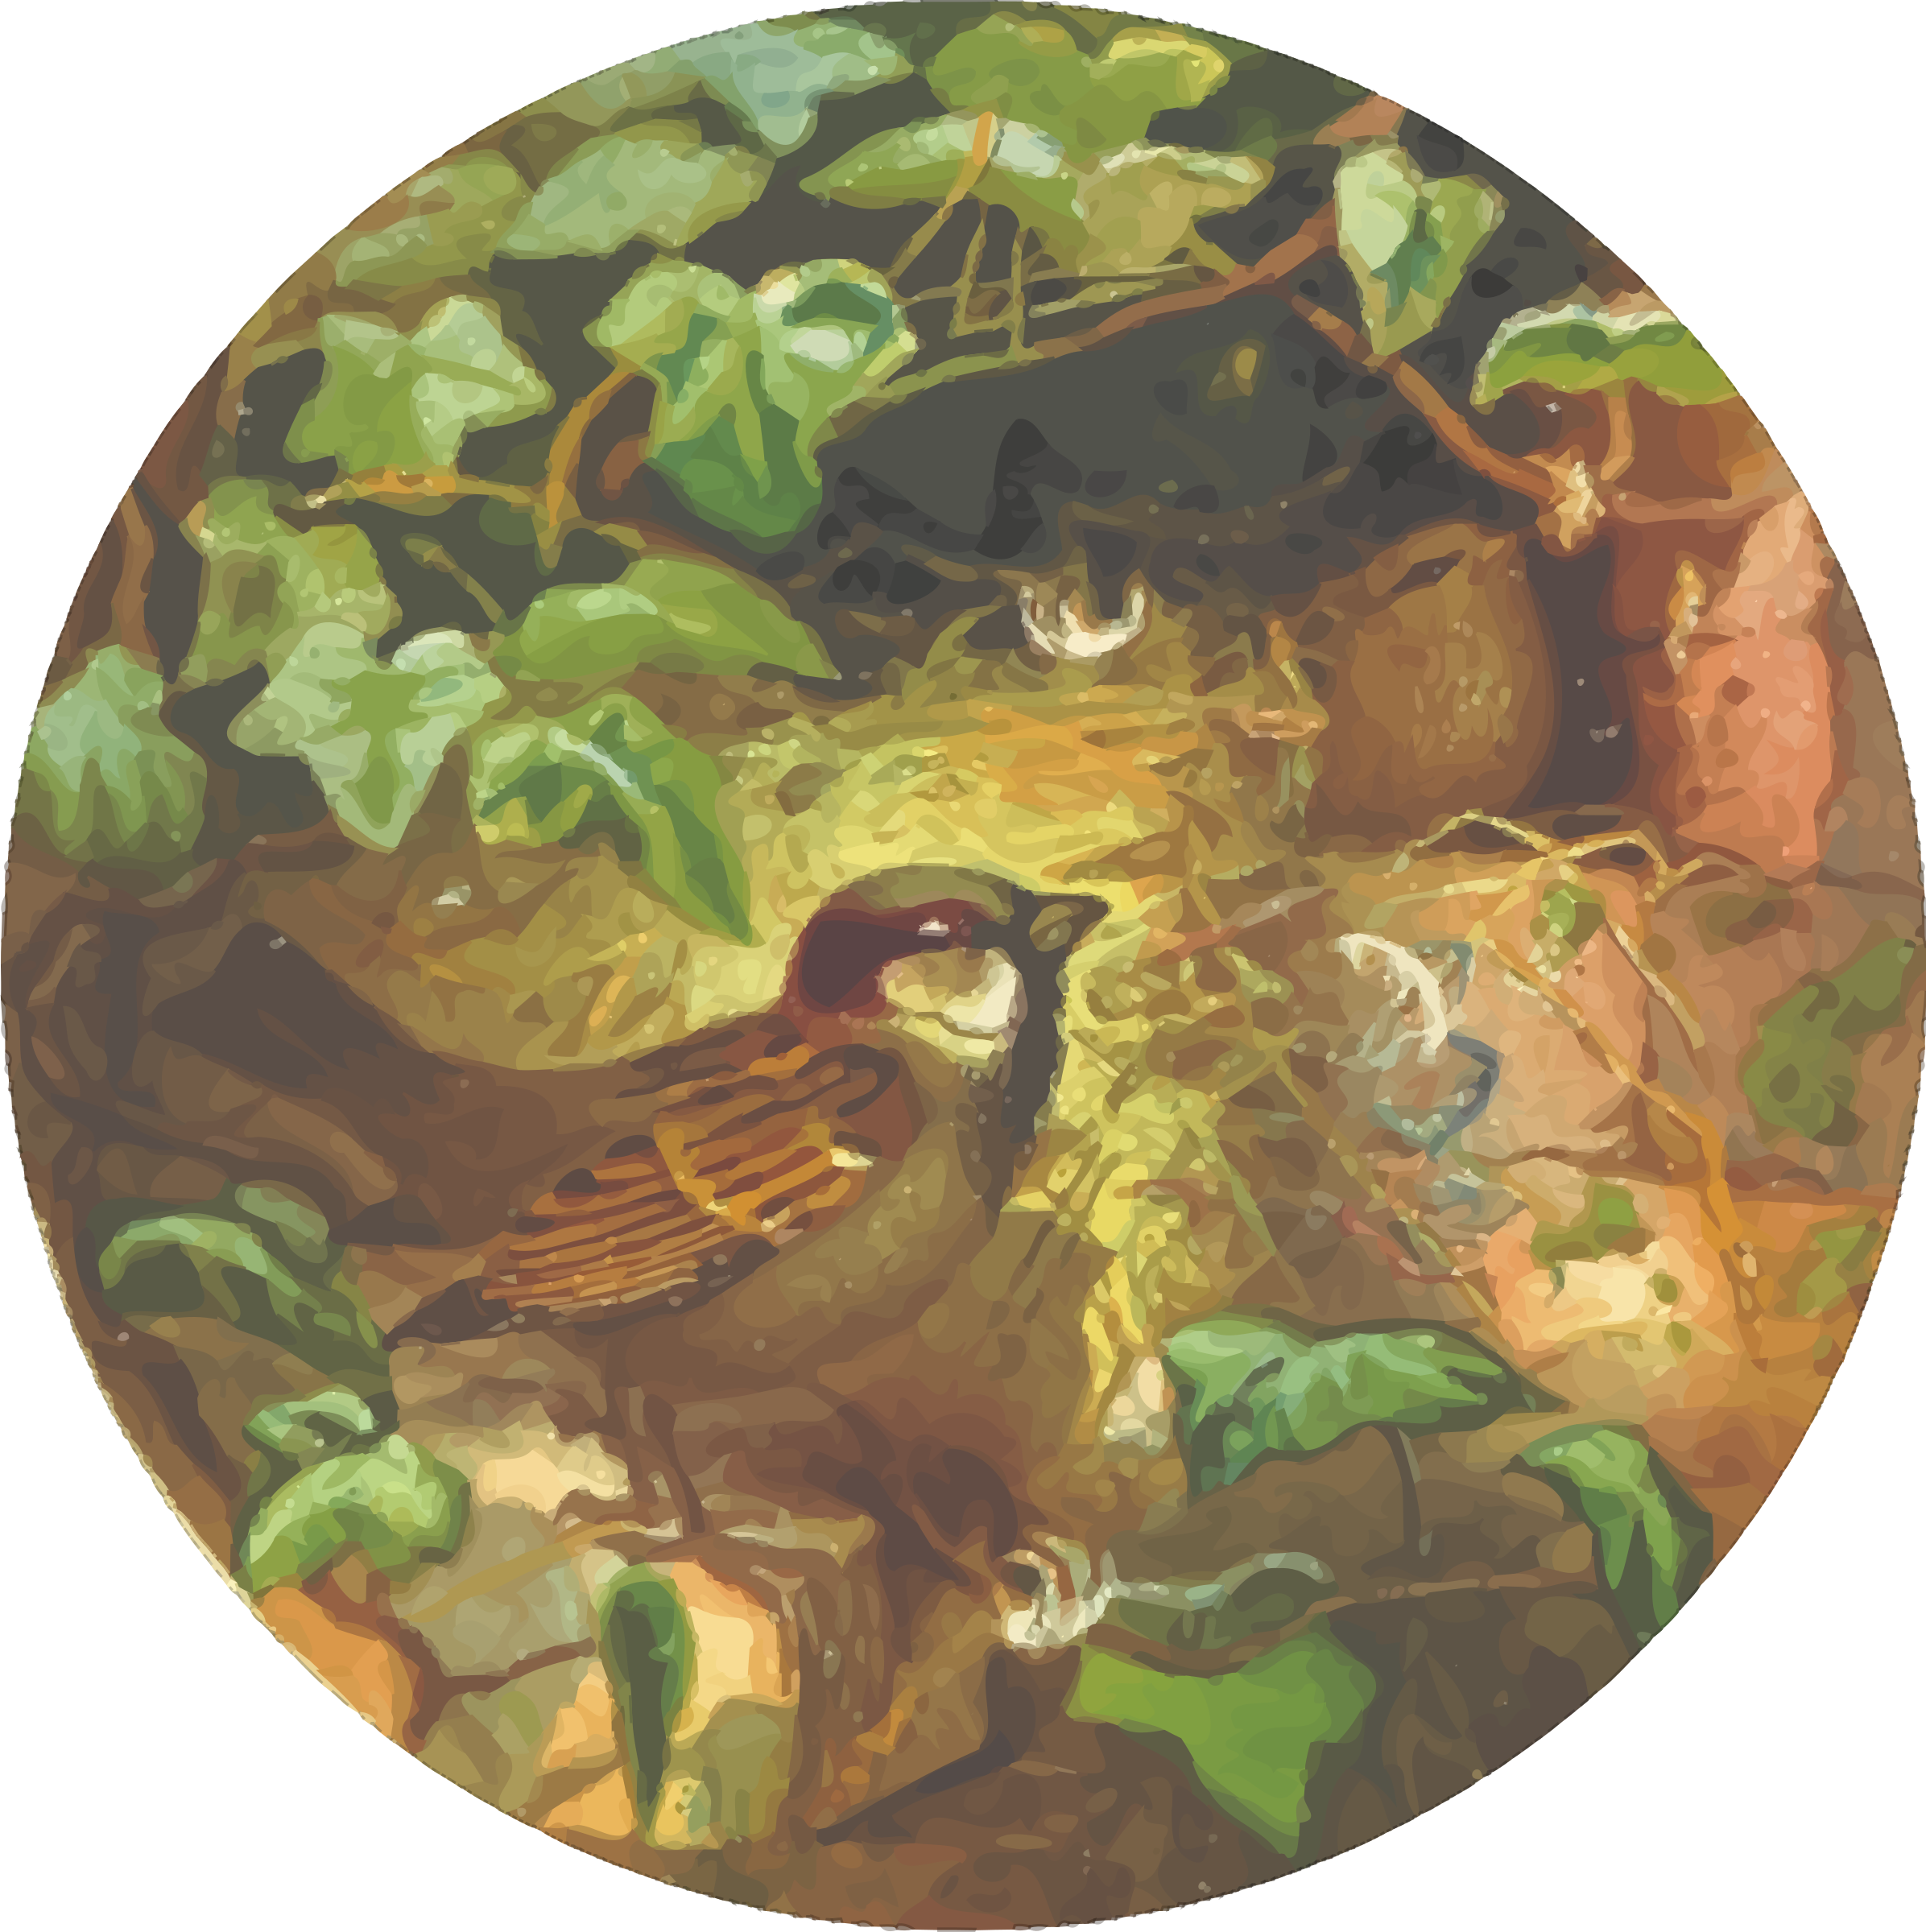 Circular house sparrow drawing by Firkin